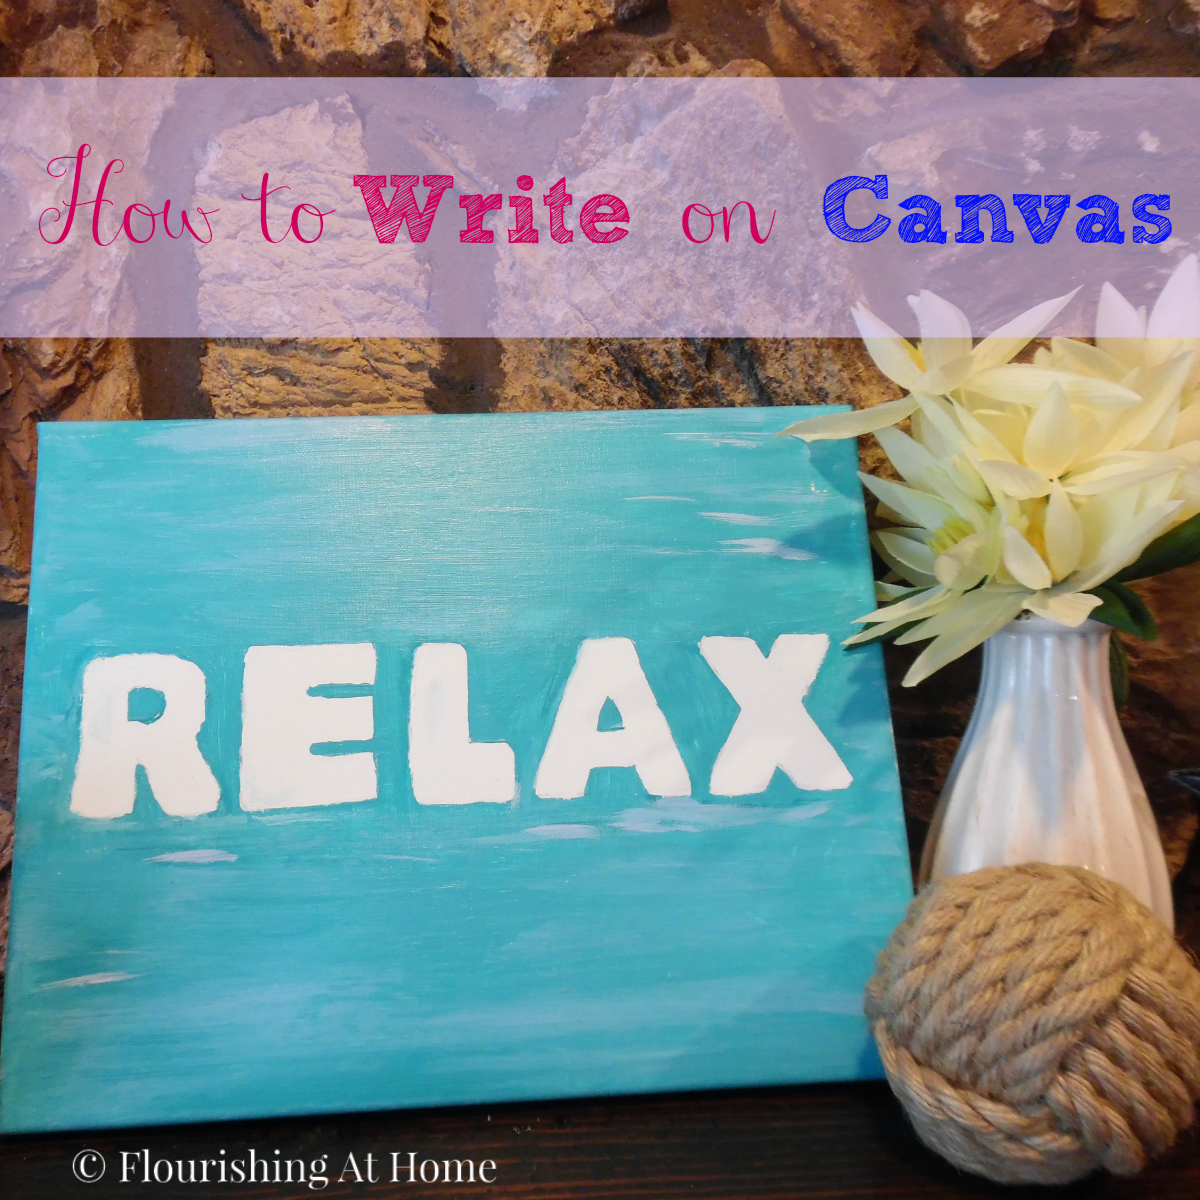 How to write on canvas - beach sign